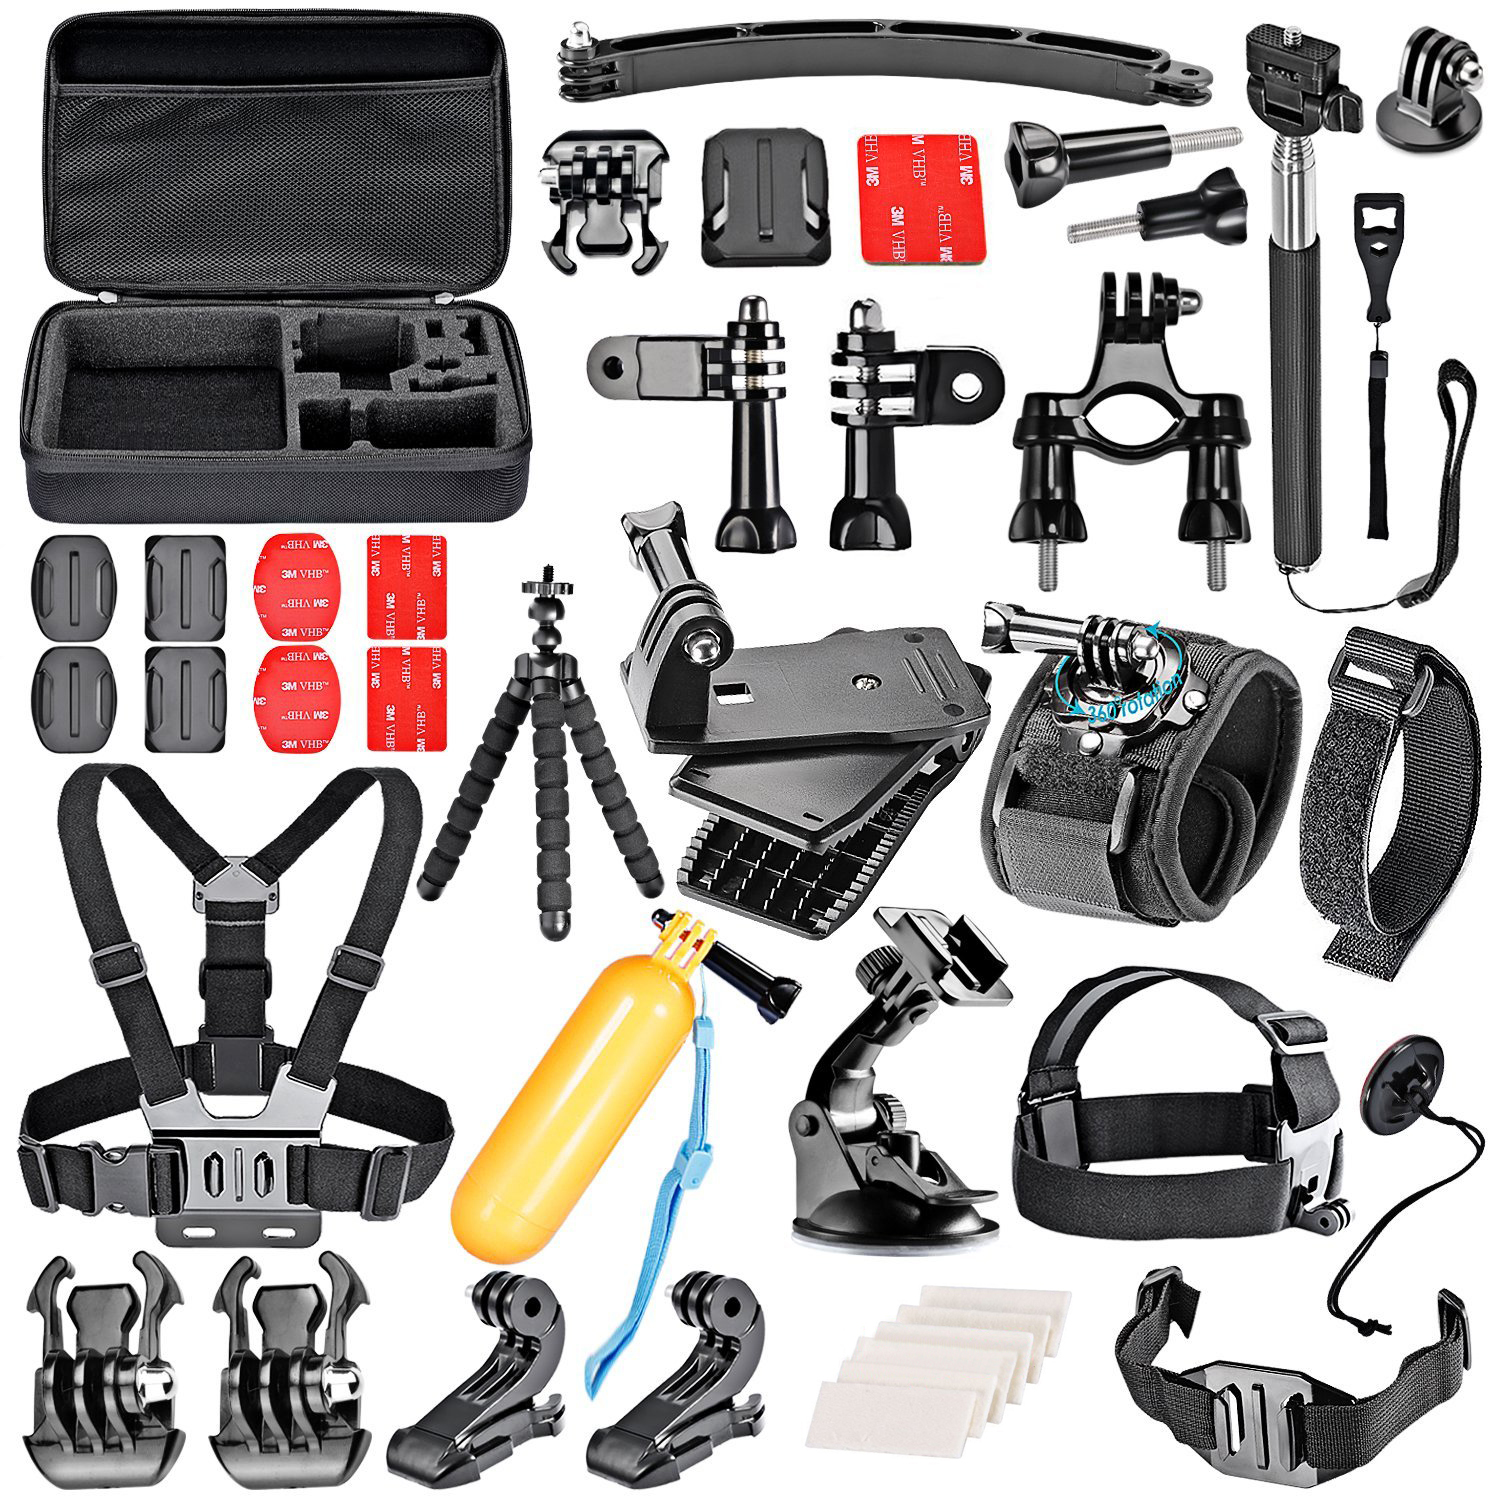 CES-36-In-1 Sport Accessory Kit for GoPro Hero4 Session Hero Series For Xiaomi Yi in Skiing Climbing Bike Camping Diving and CES